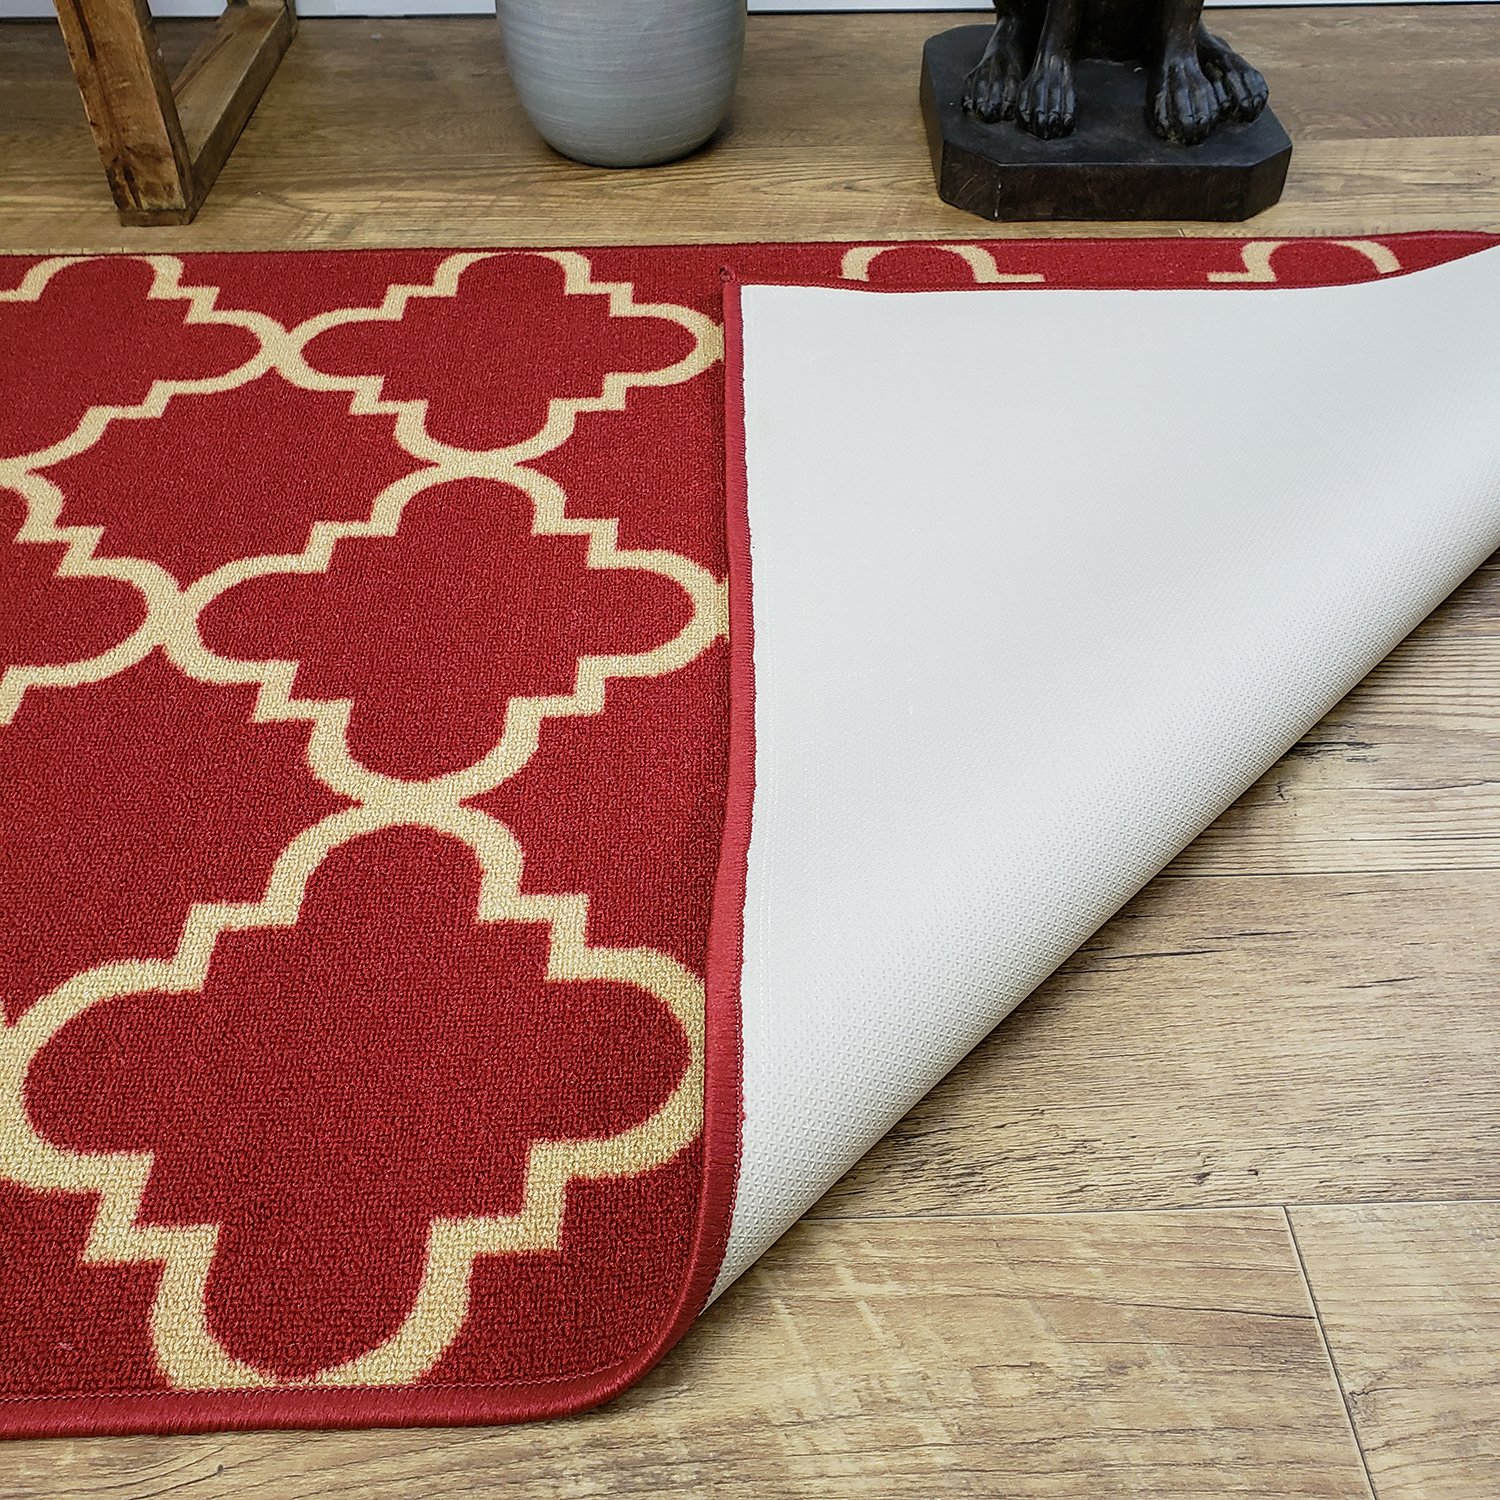 CAN BE CUSTOMIZED FOR STAR WARS CARPET SQUARE NON-SLIP CARPET FOOT PAD